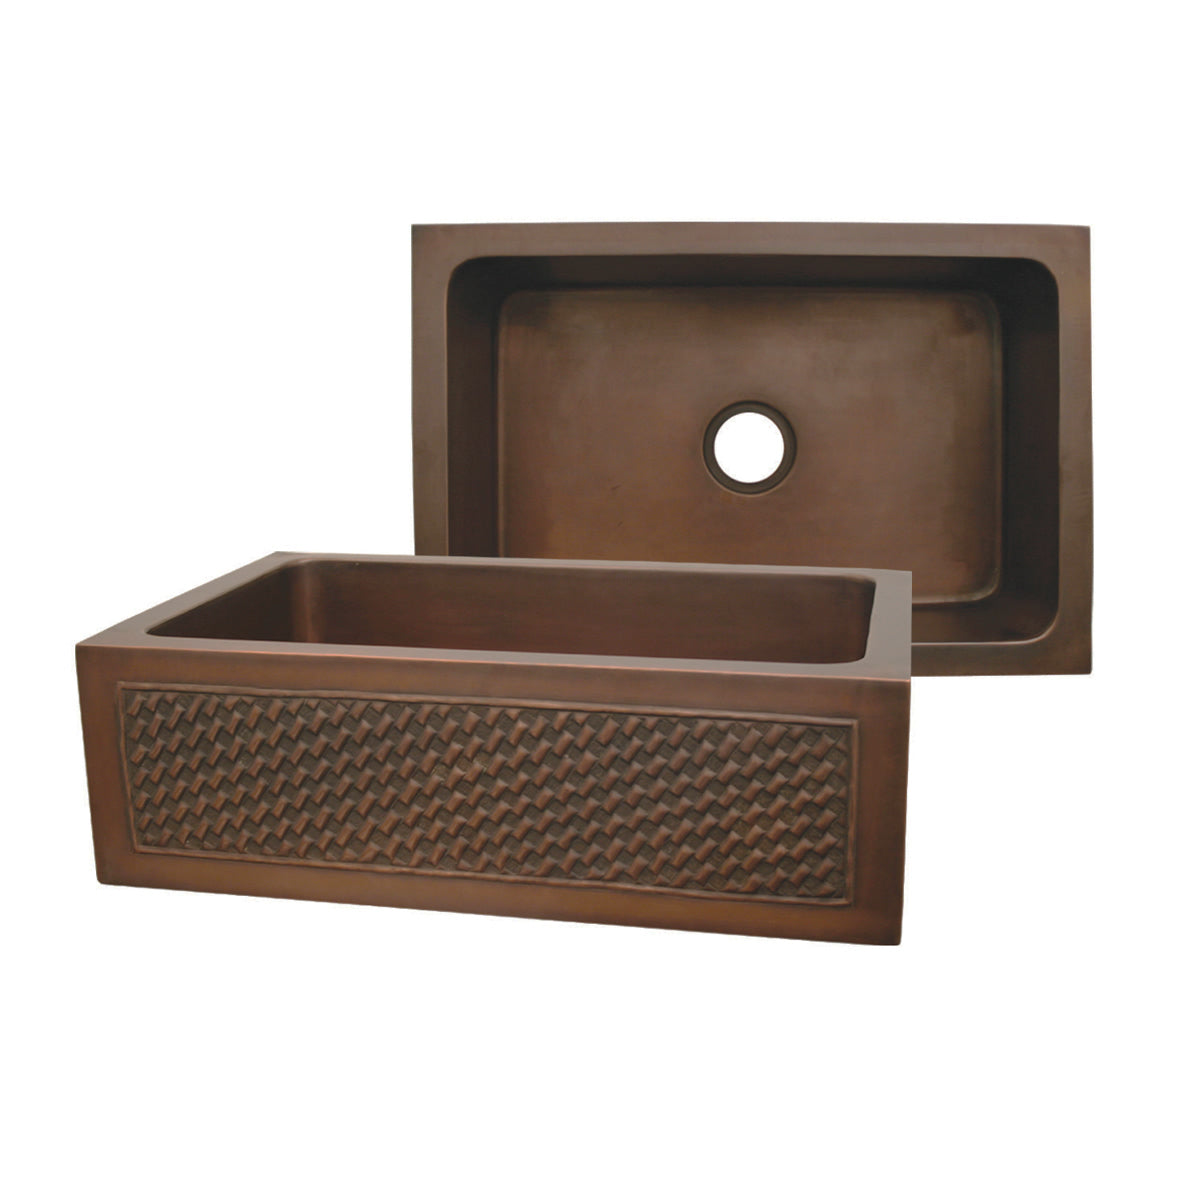 Whitehaus Copperhaus Rectangular Undermount Sink with a Basket Weave Design Front Apron